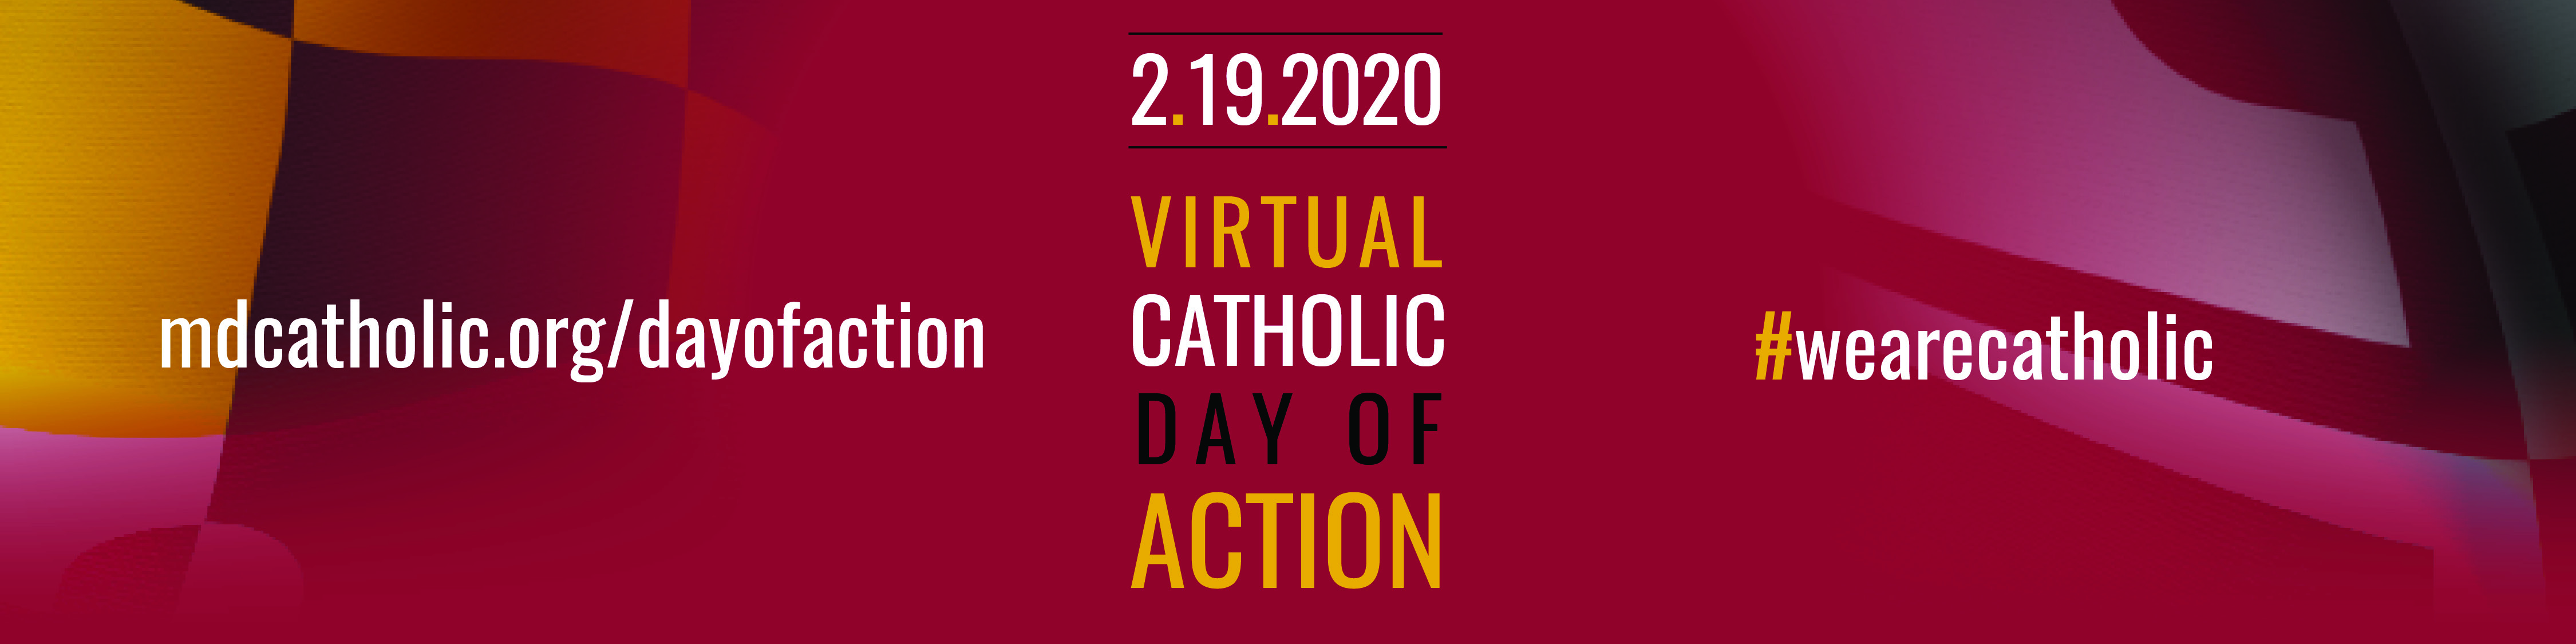 Virtual Catholic Day of Action